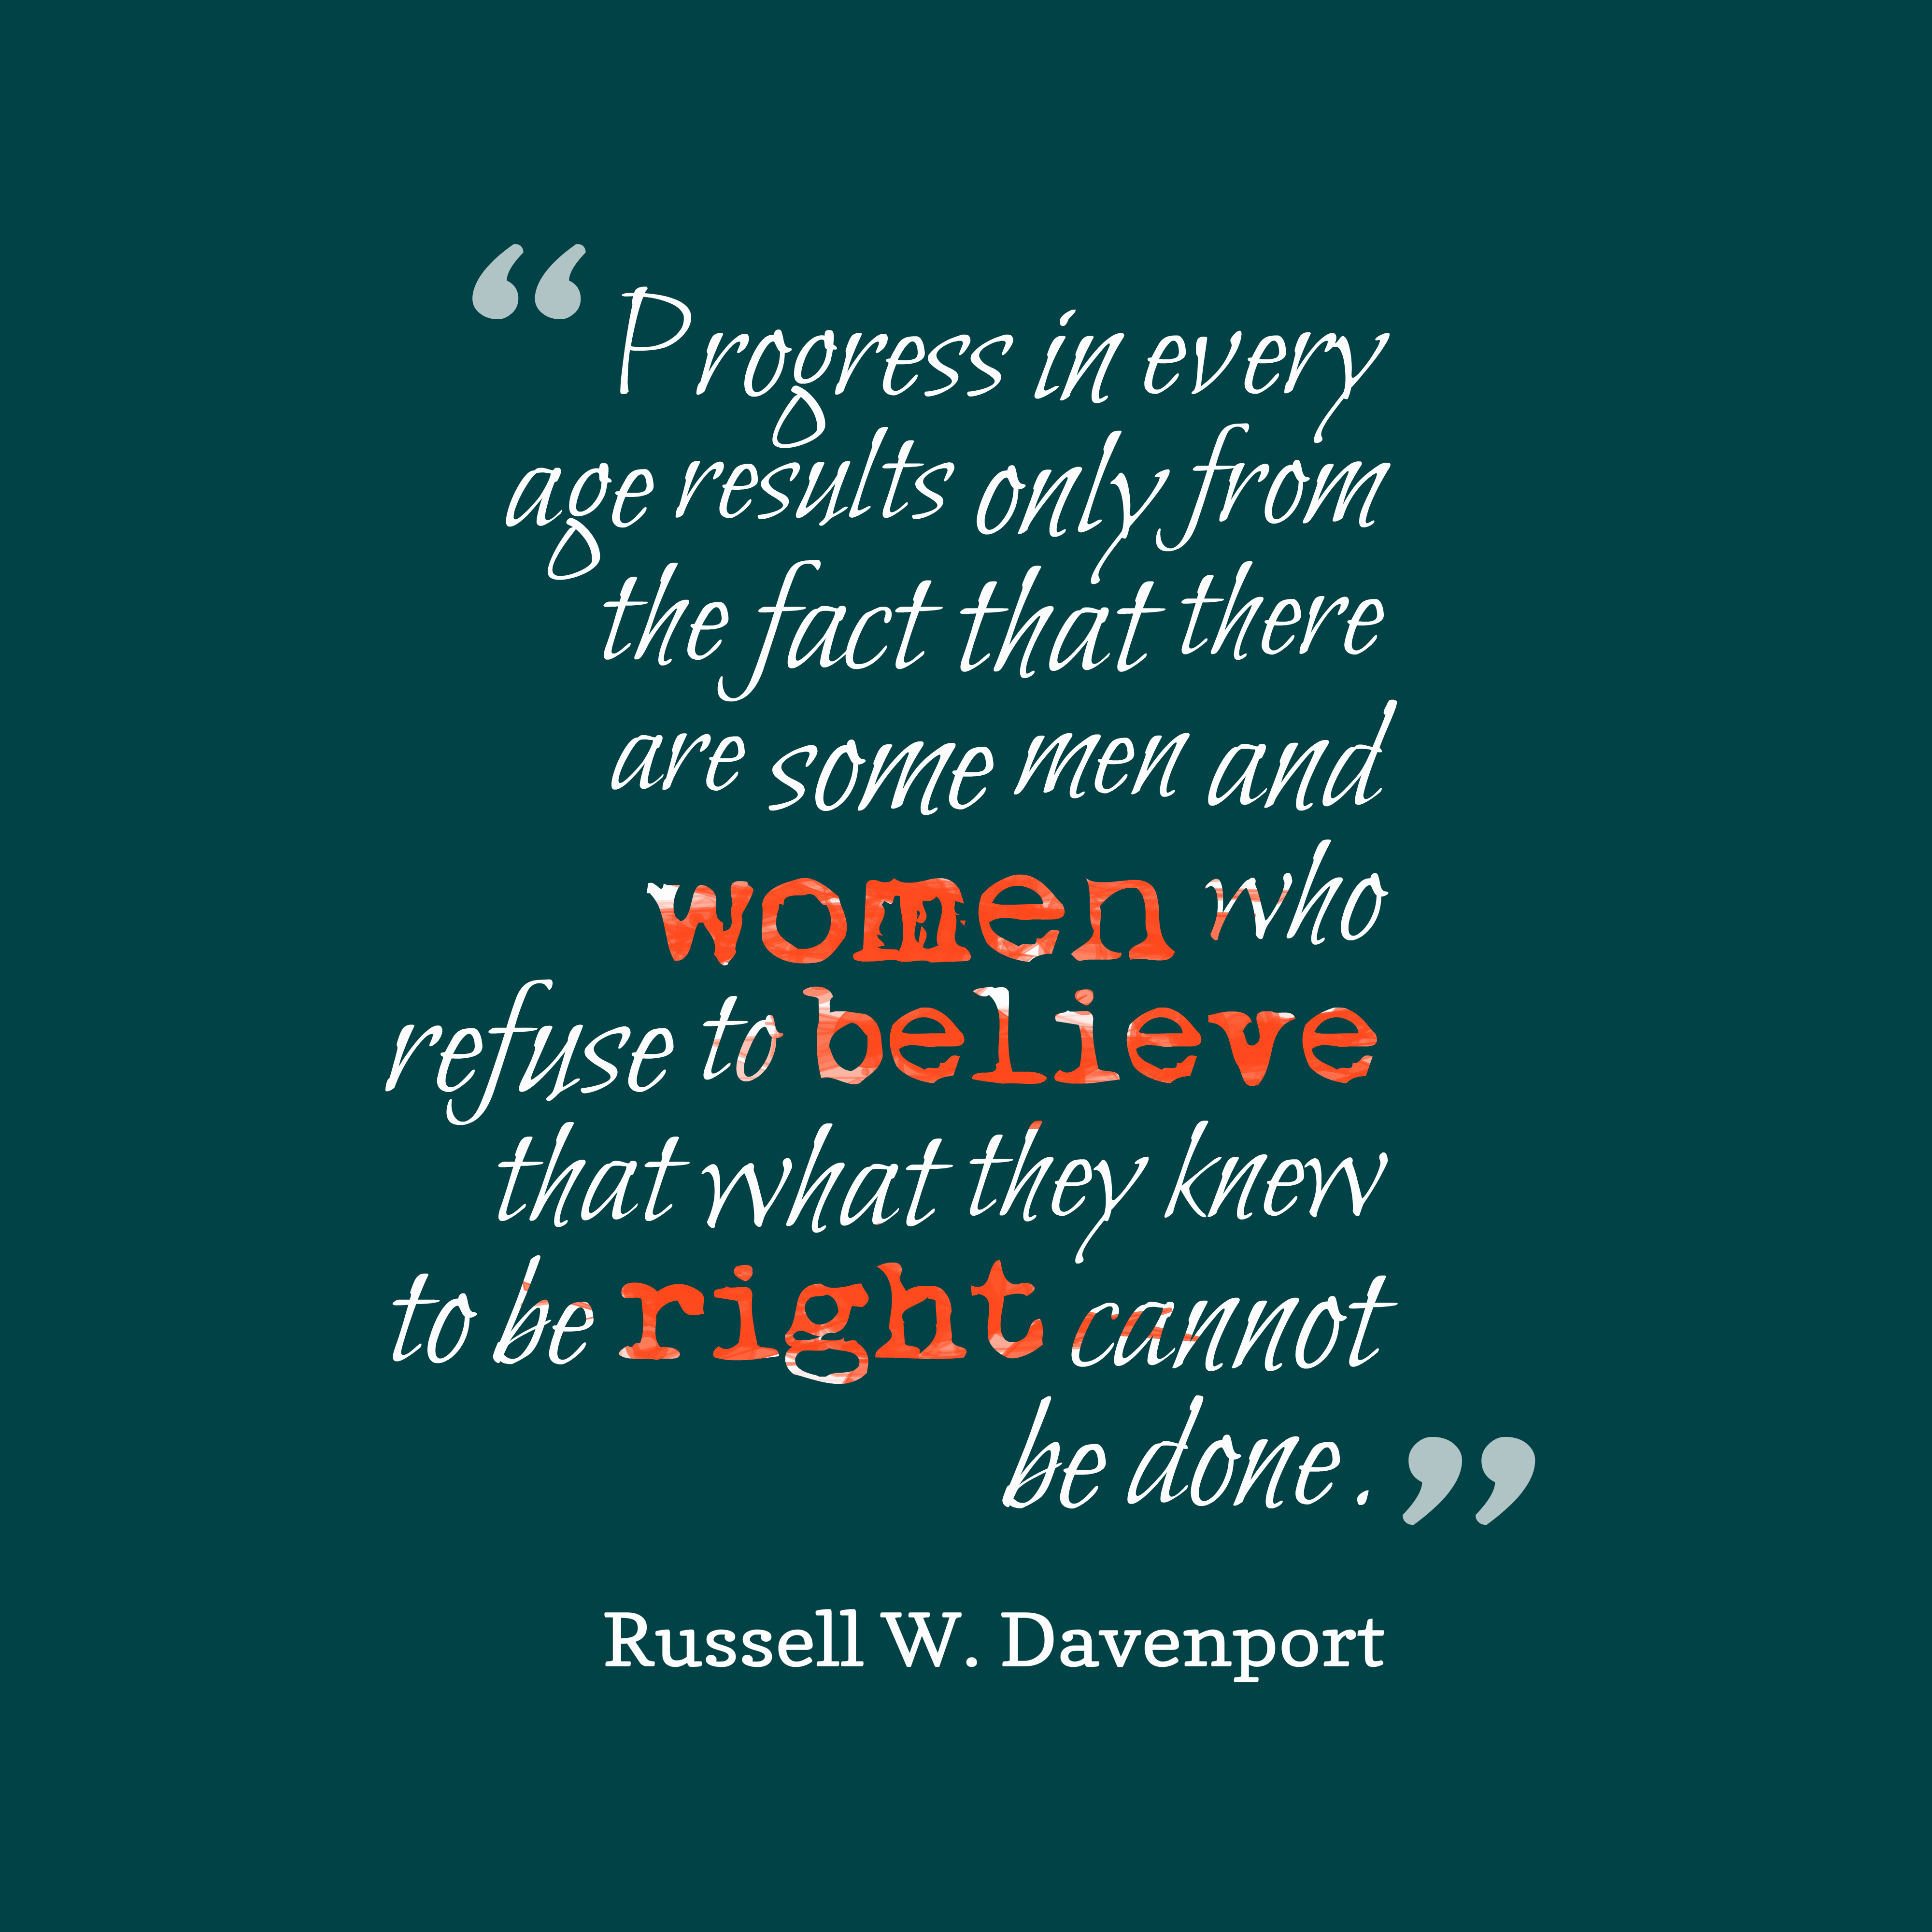 Progress Quotes Russell W. Davenport quote about progress. Progress Quotes